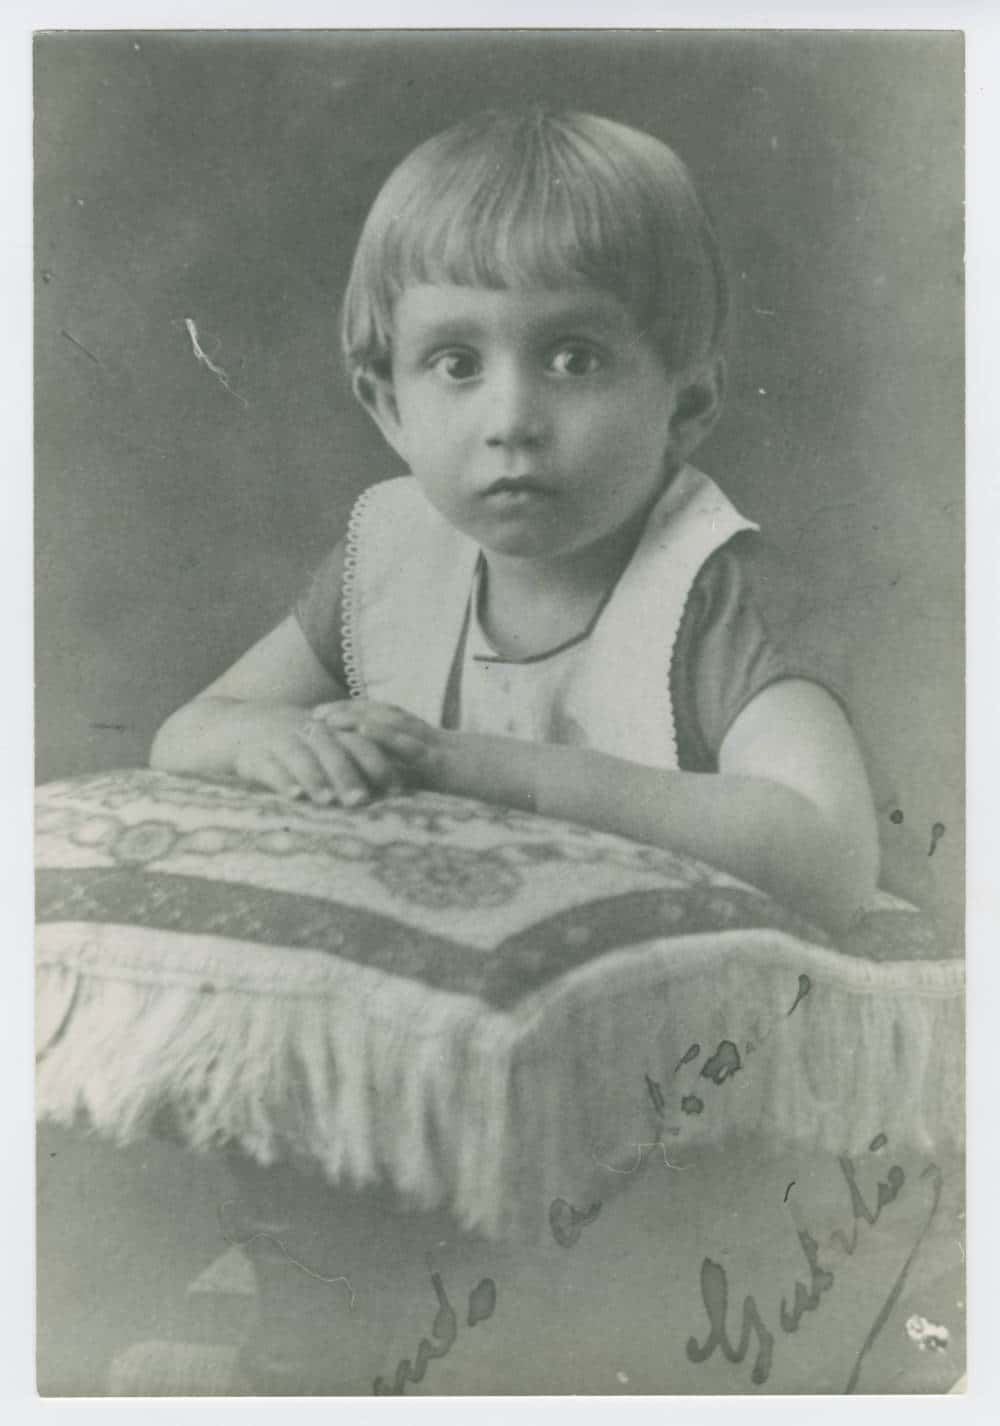 Gabriel García Márquez in a 1929 photograph, at about age two.